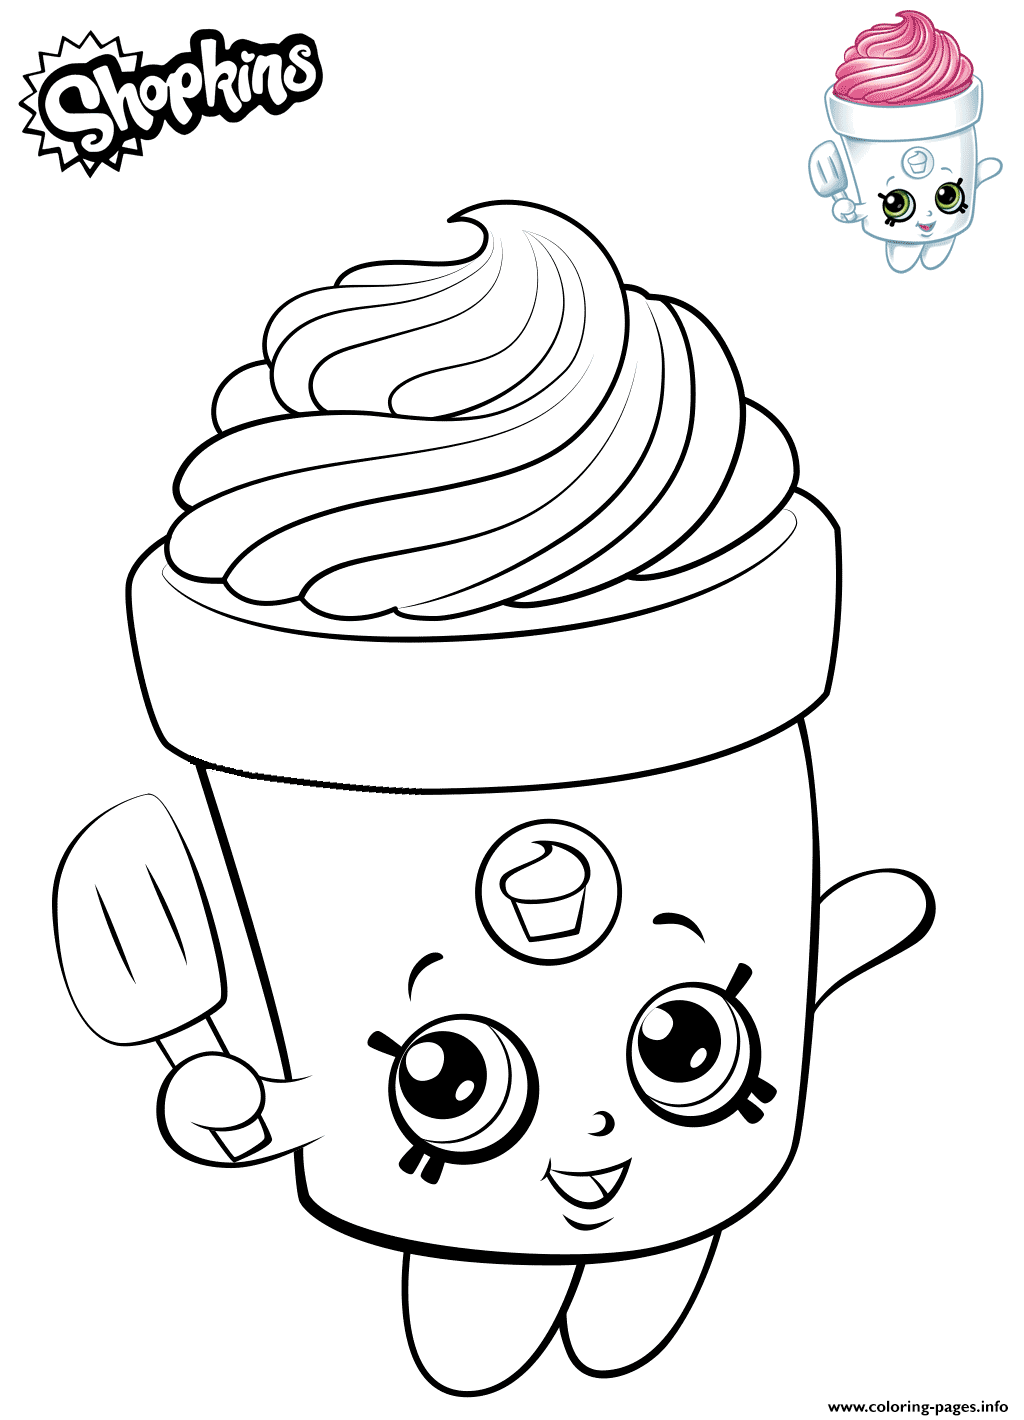 Print Cute Shopkins Freda Frosting Coloring Pages Shopkin Coloring Pages Shopkins Colouring Pages Cute Coloring Pages